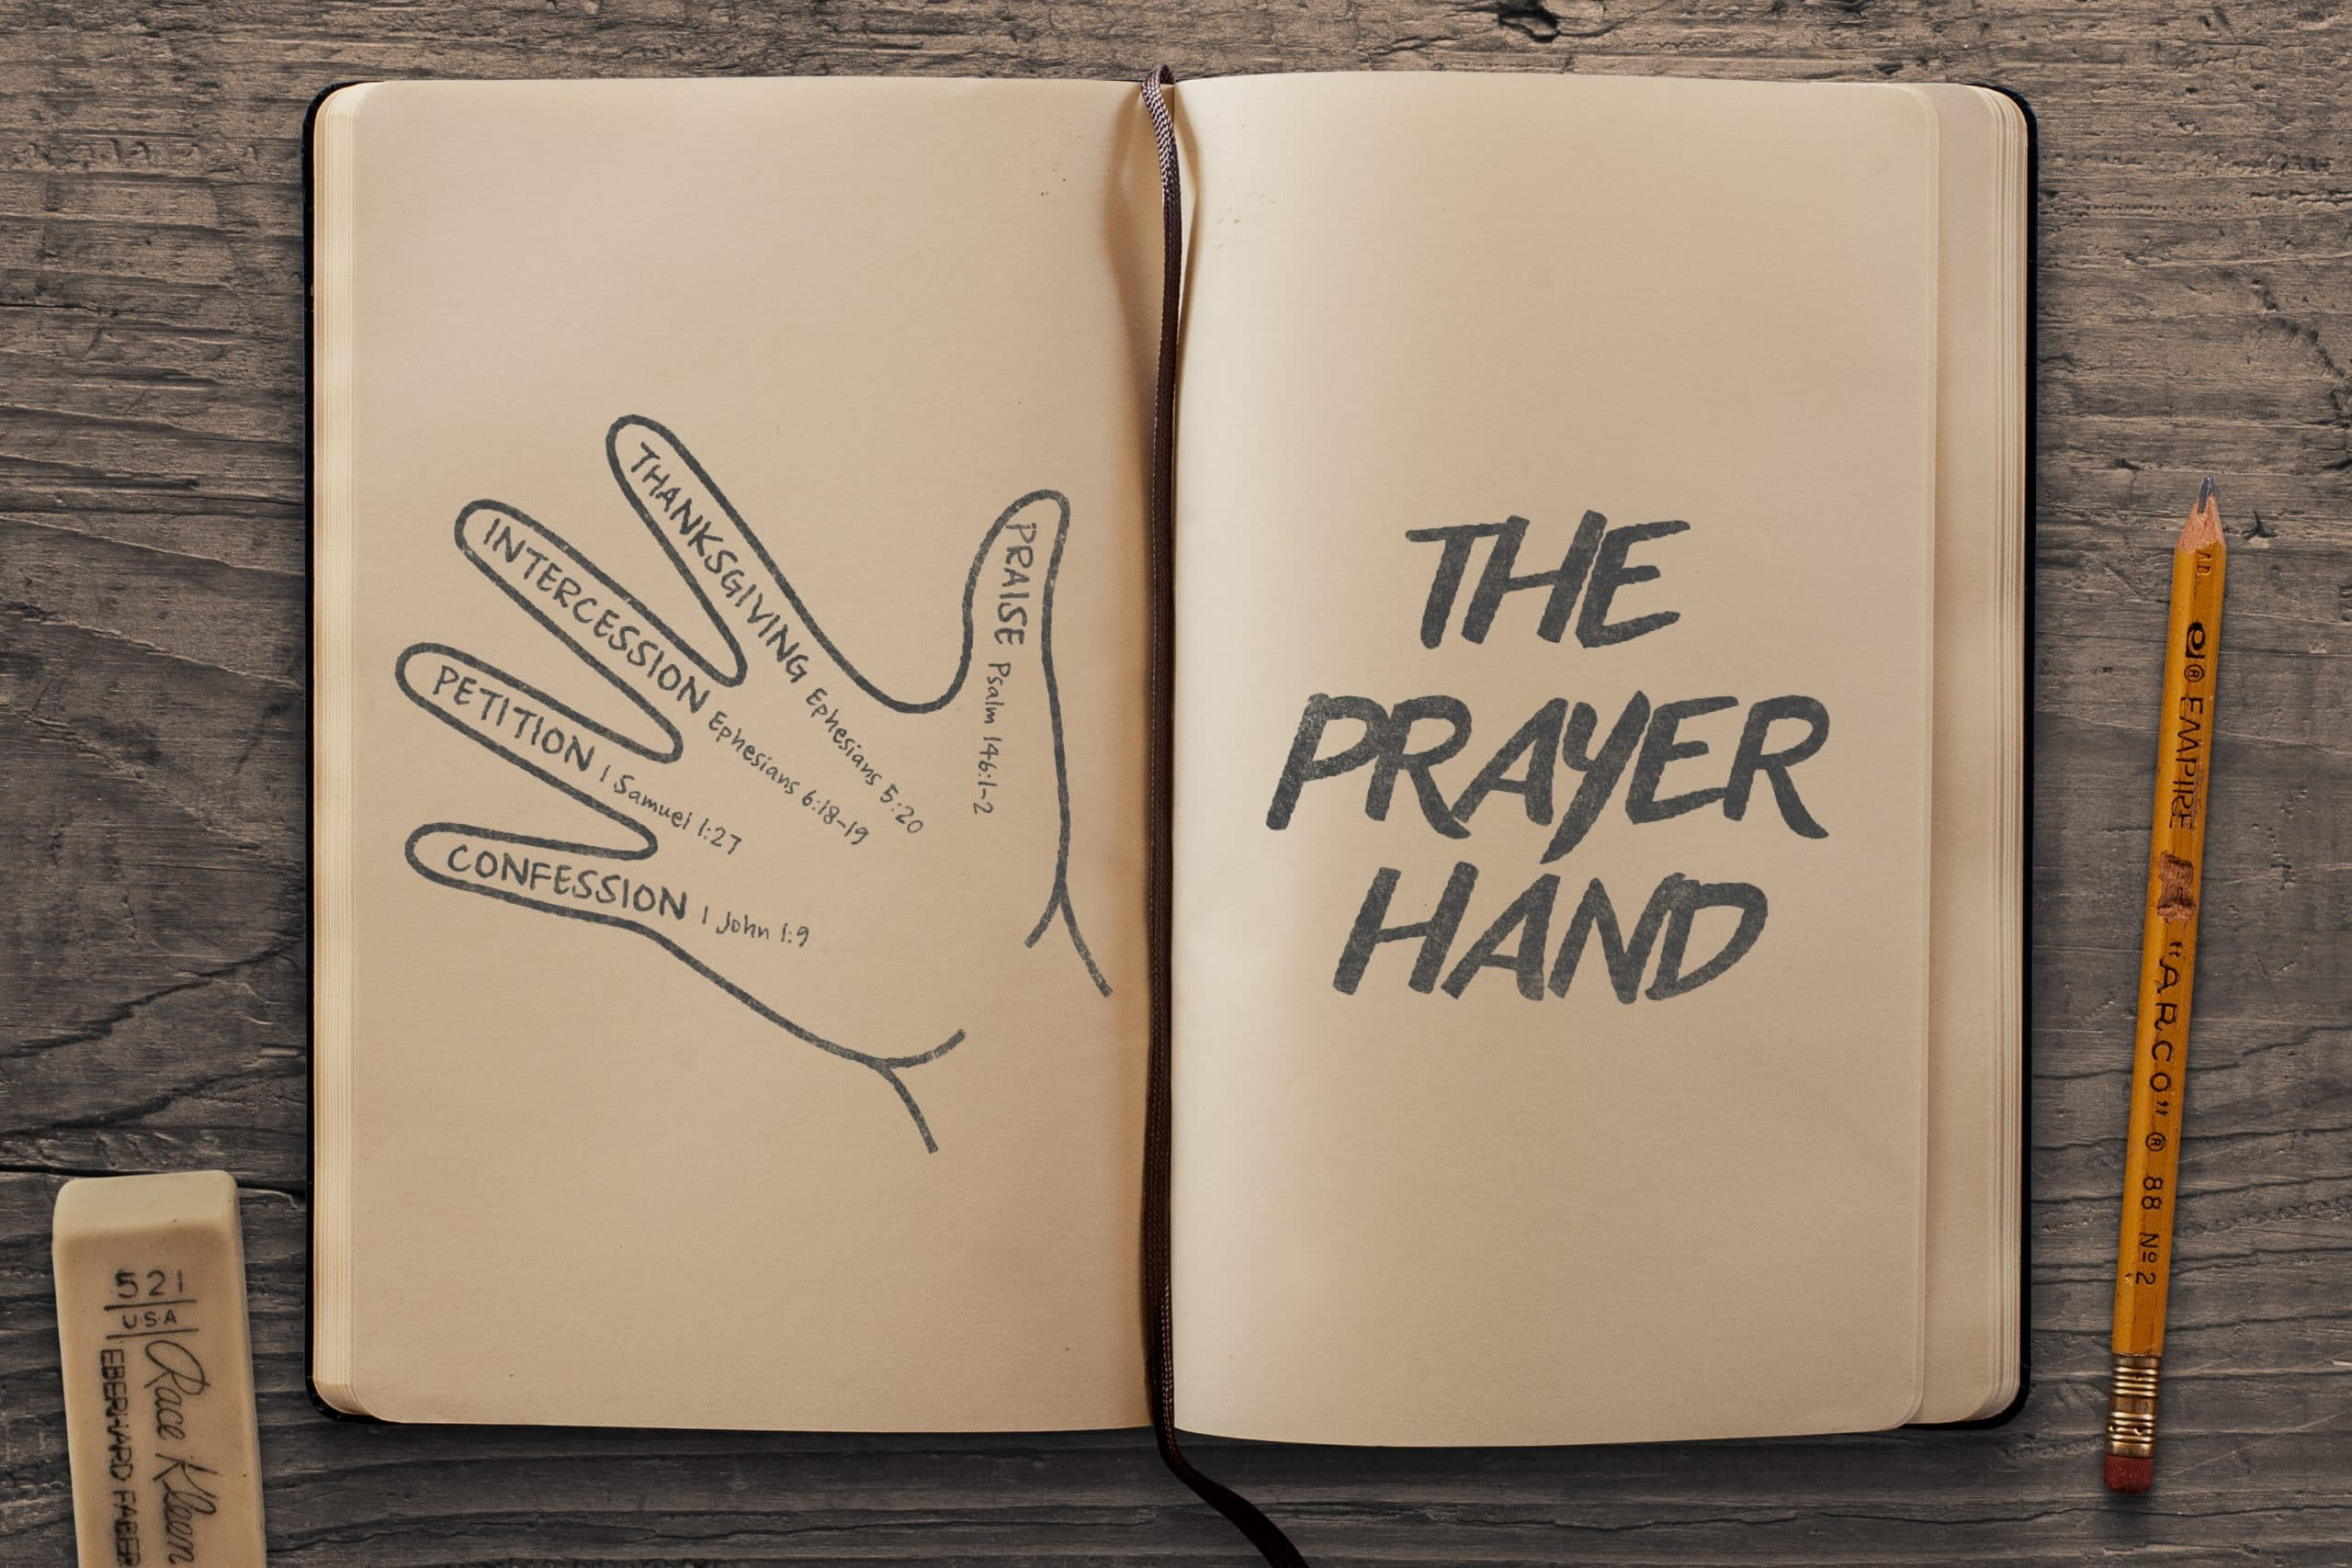 photo about Acts Prayer Printable titled The Prayer Hand The Navigators